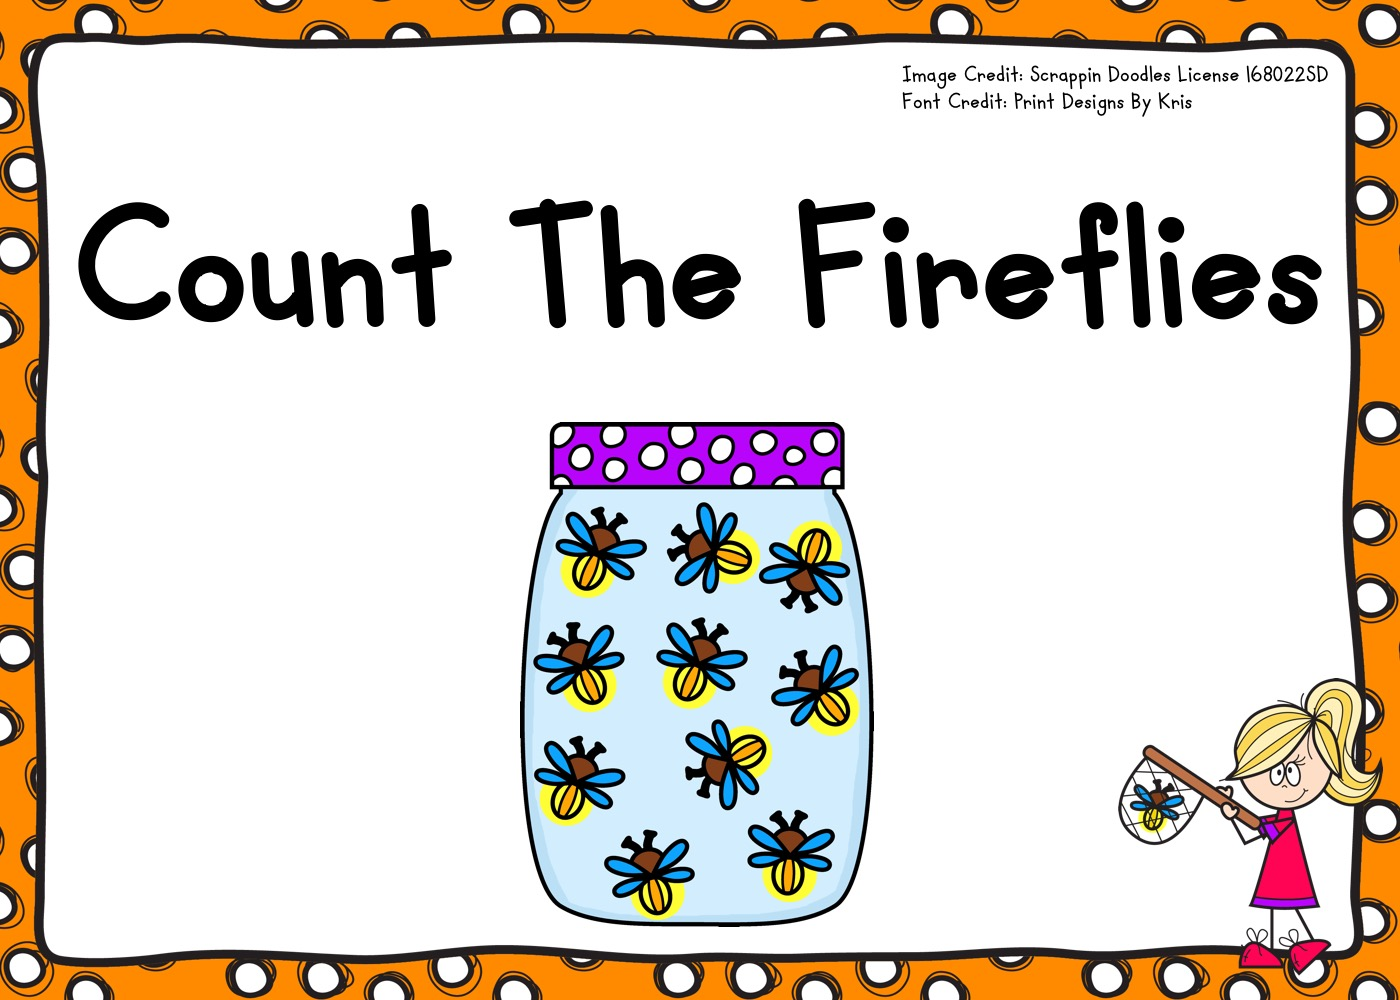 Count The Fireflies 1-10